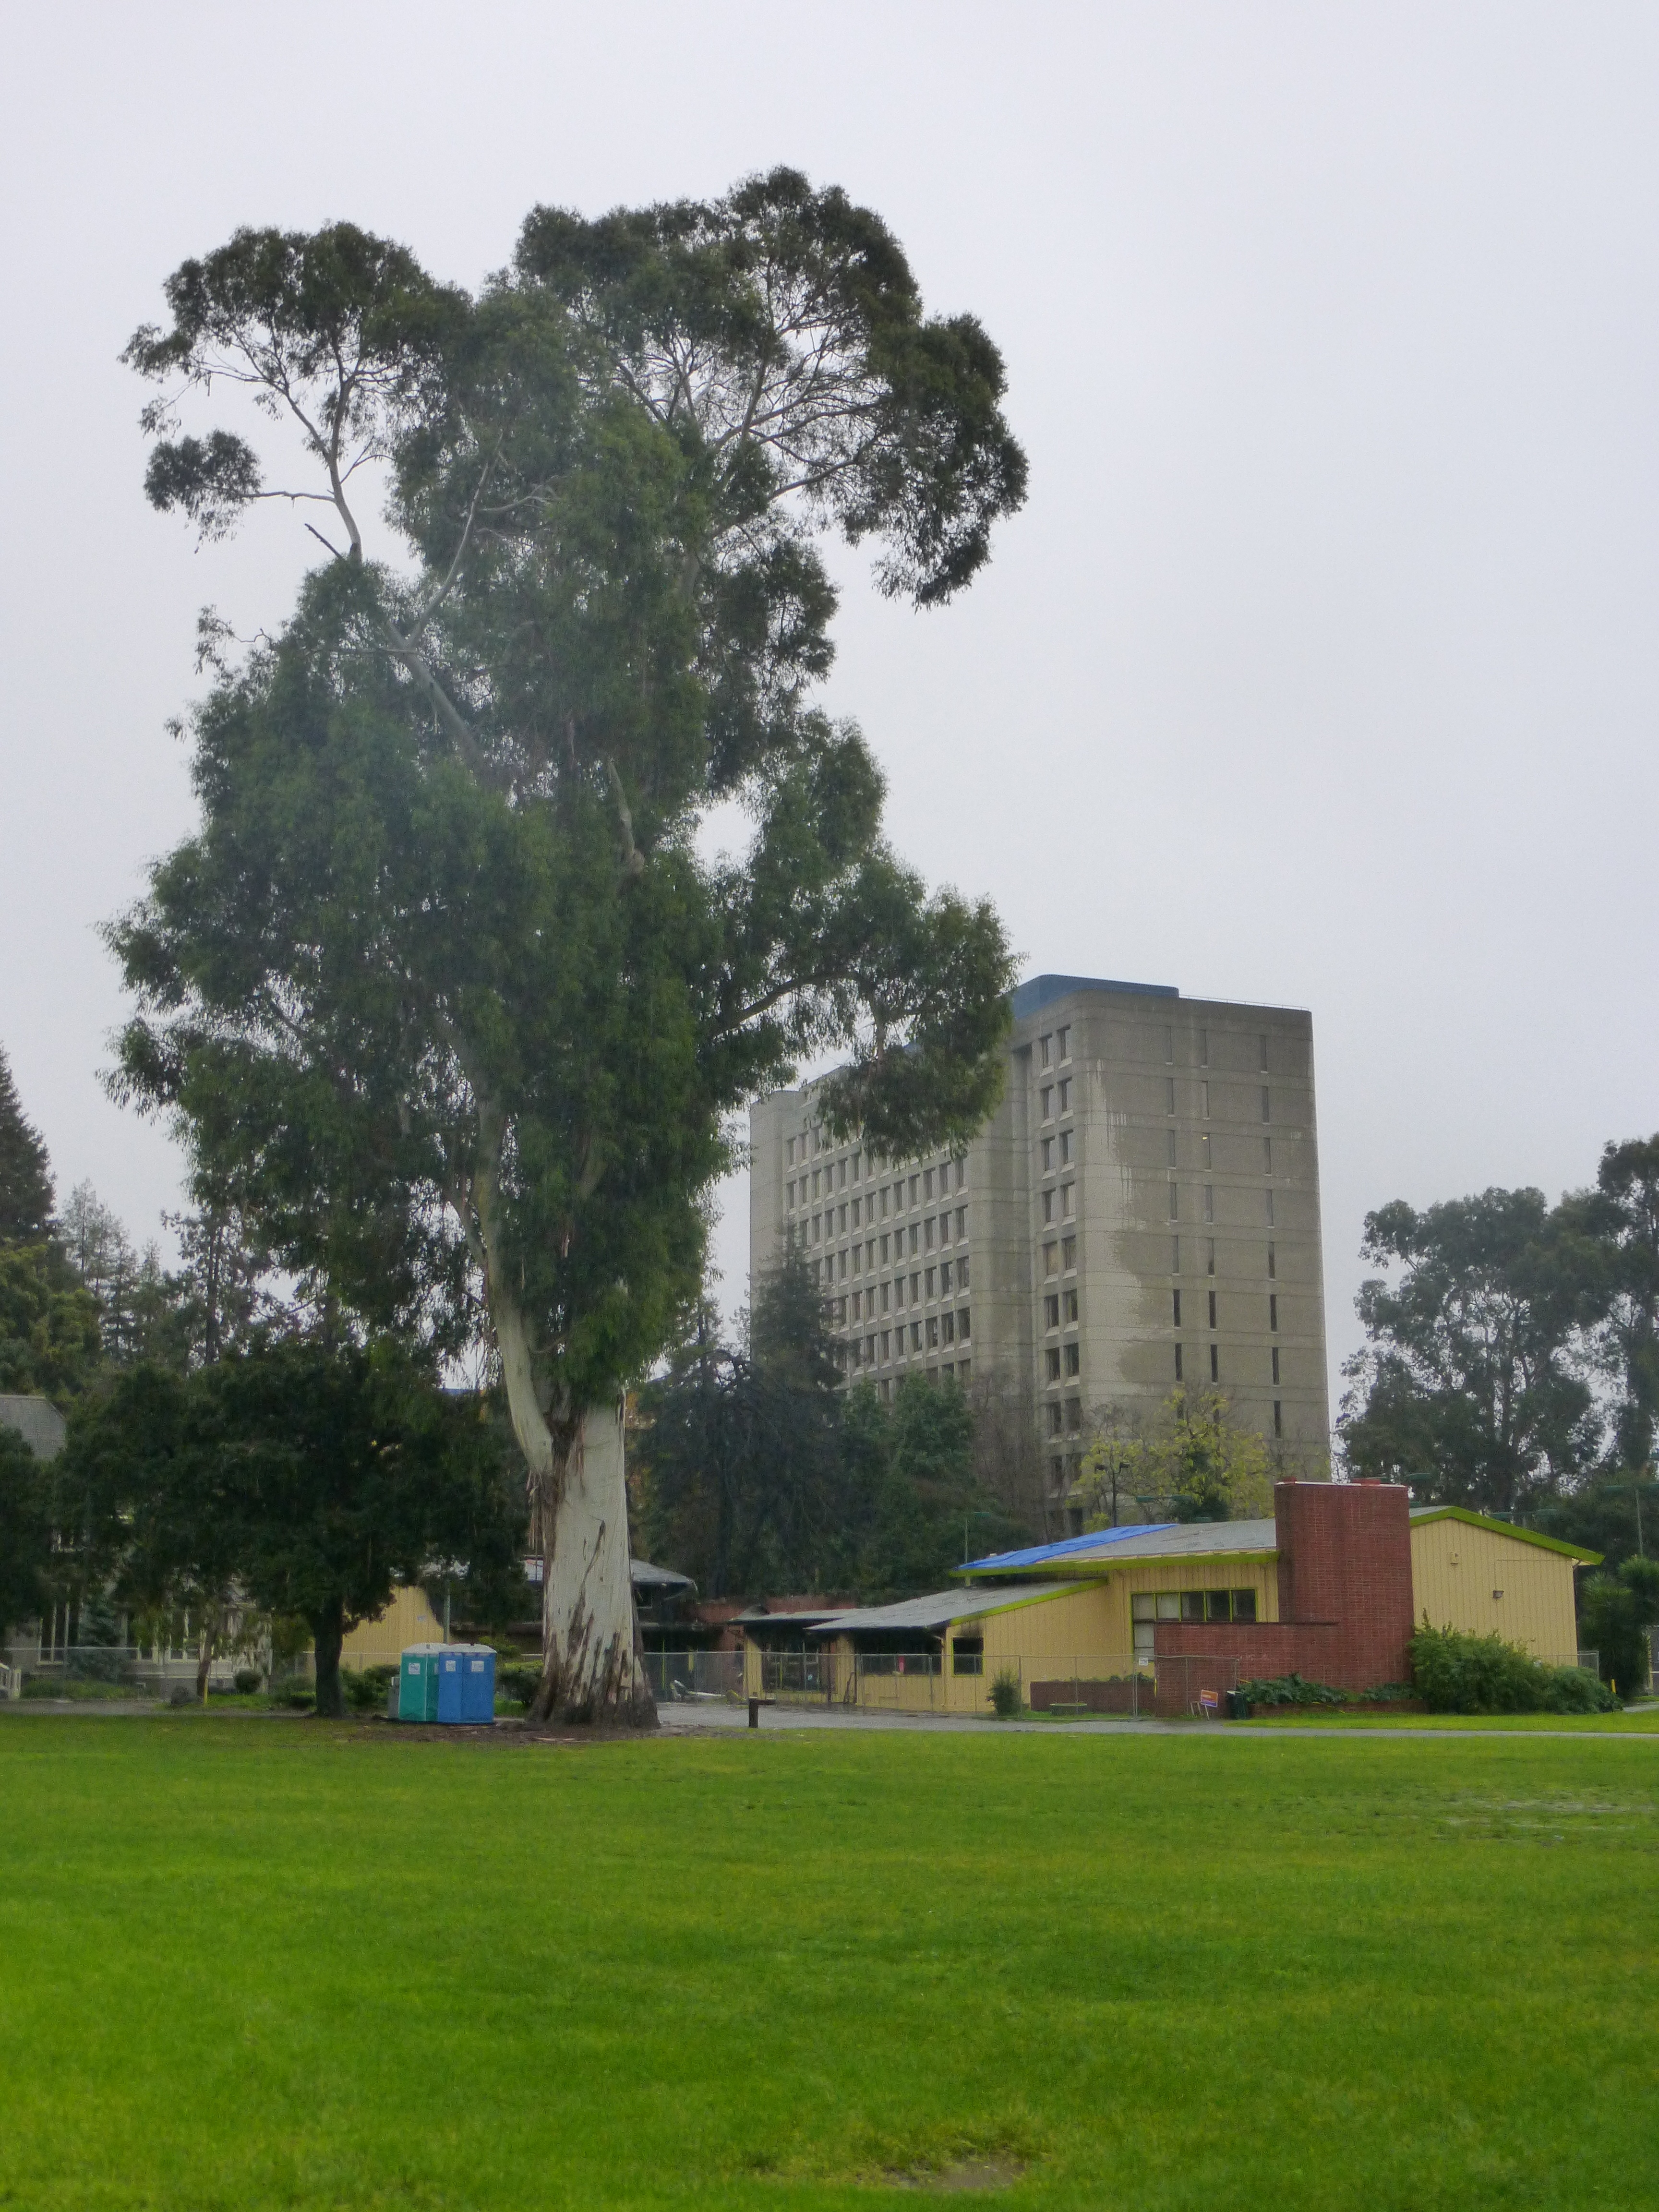 Trees around the Mosswood Recreation Center were not ignited by the fire, including this huge eucalyptus tree.